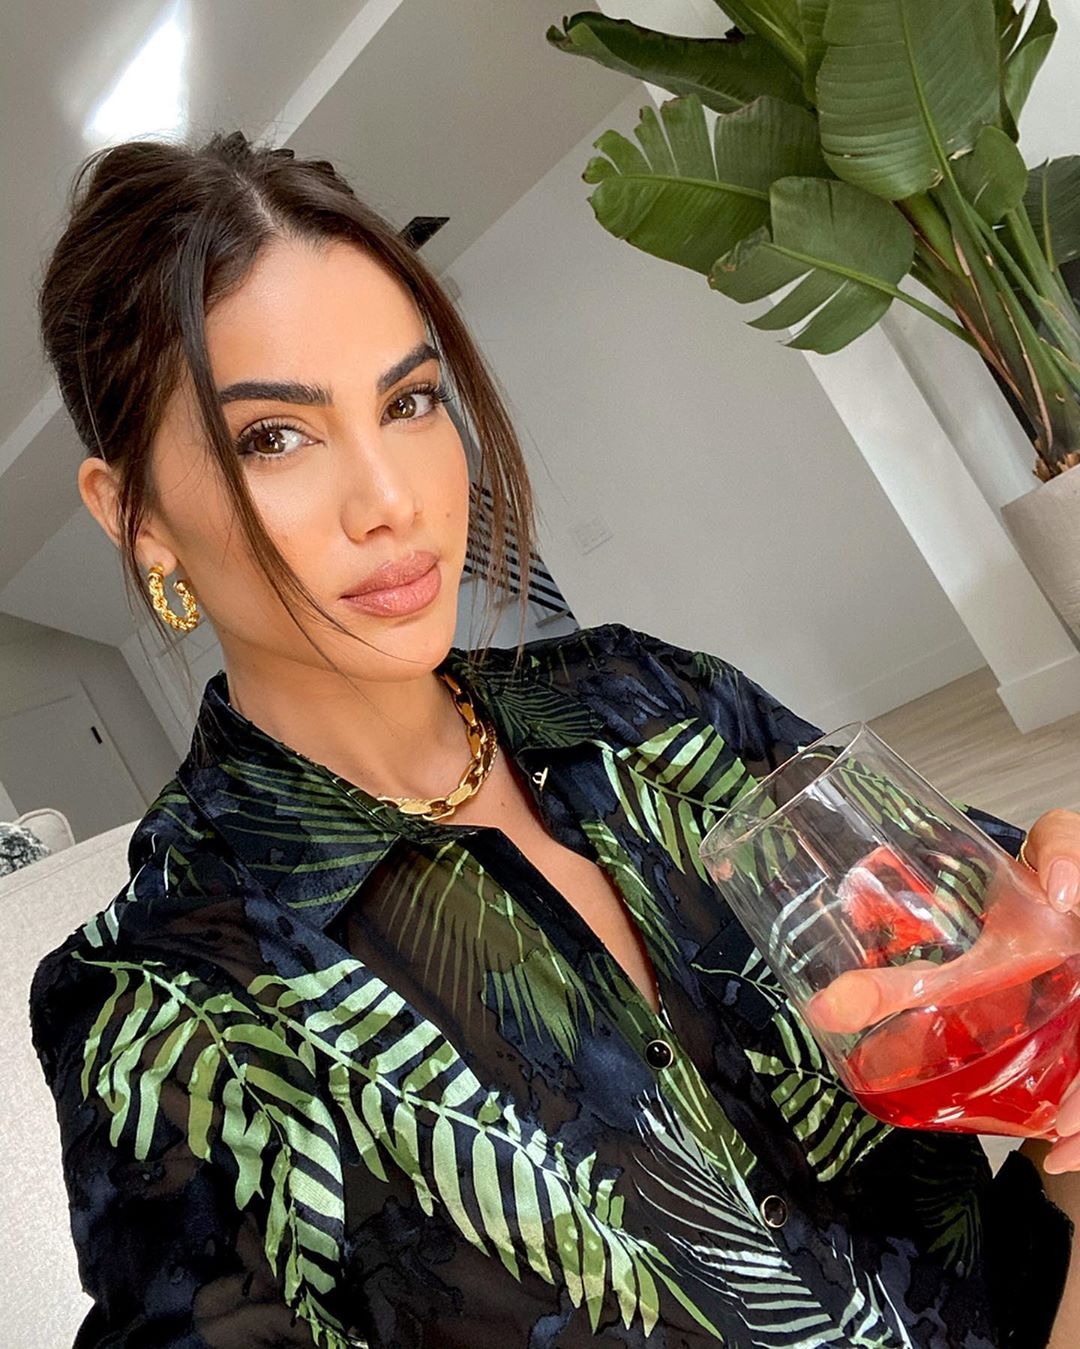 Camila Coelho donning a Oversized shiny black Camila Coelho floral shirt with a satin material, elbow length sleeves, shirt collar, floral print and curved hem